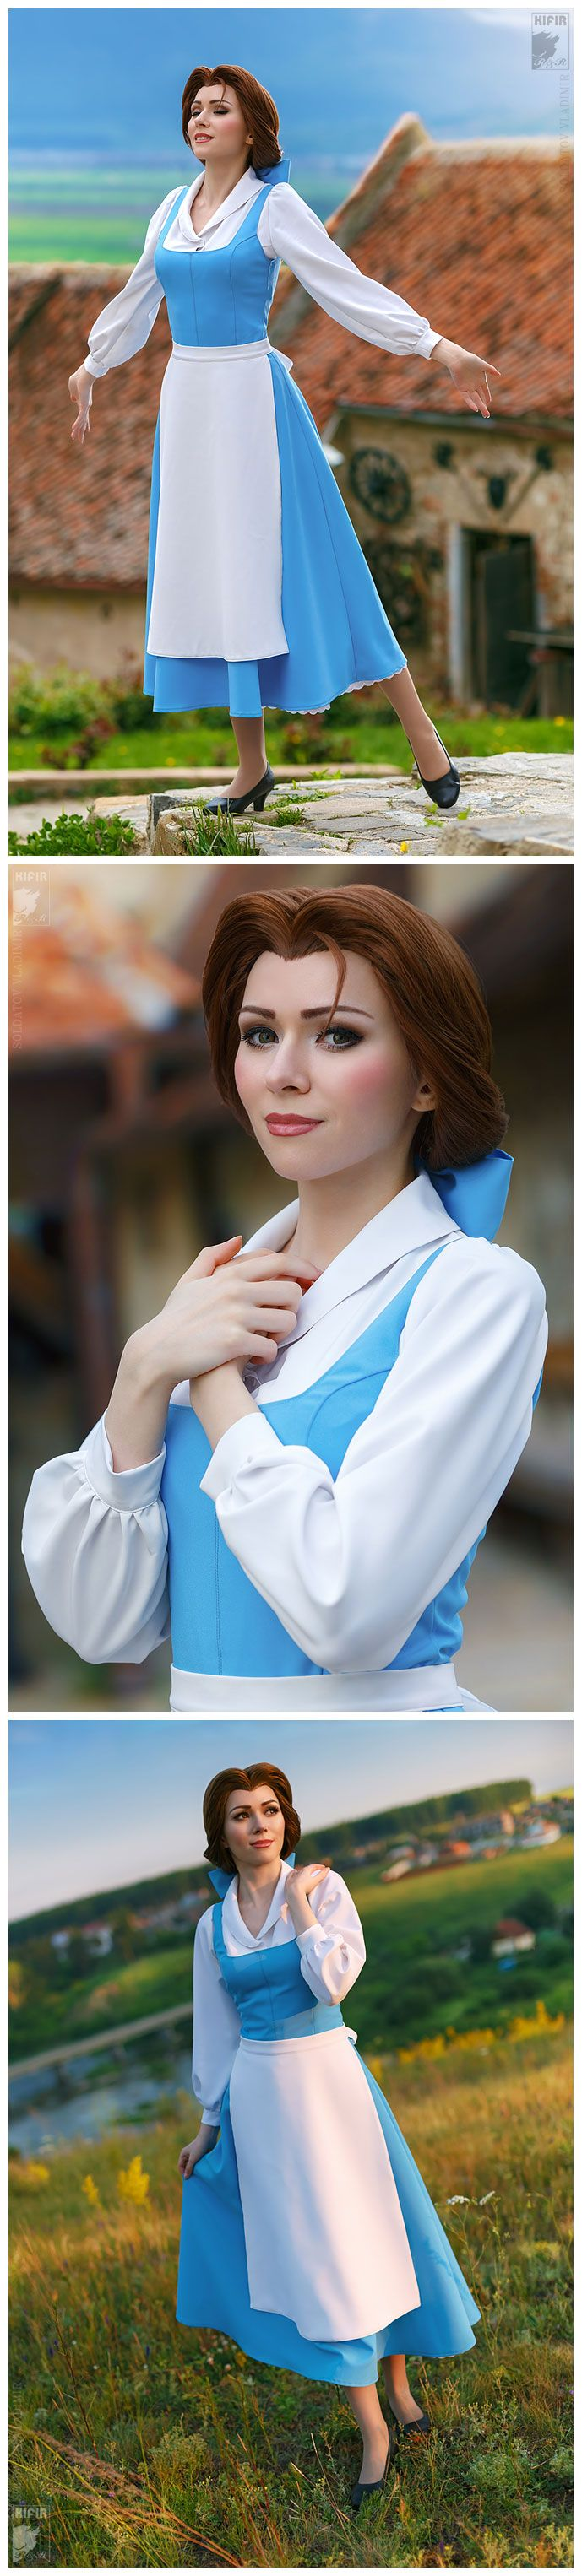 Belle from Disney's Beauty and the Beast by ryoko-demon.deviantart.com